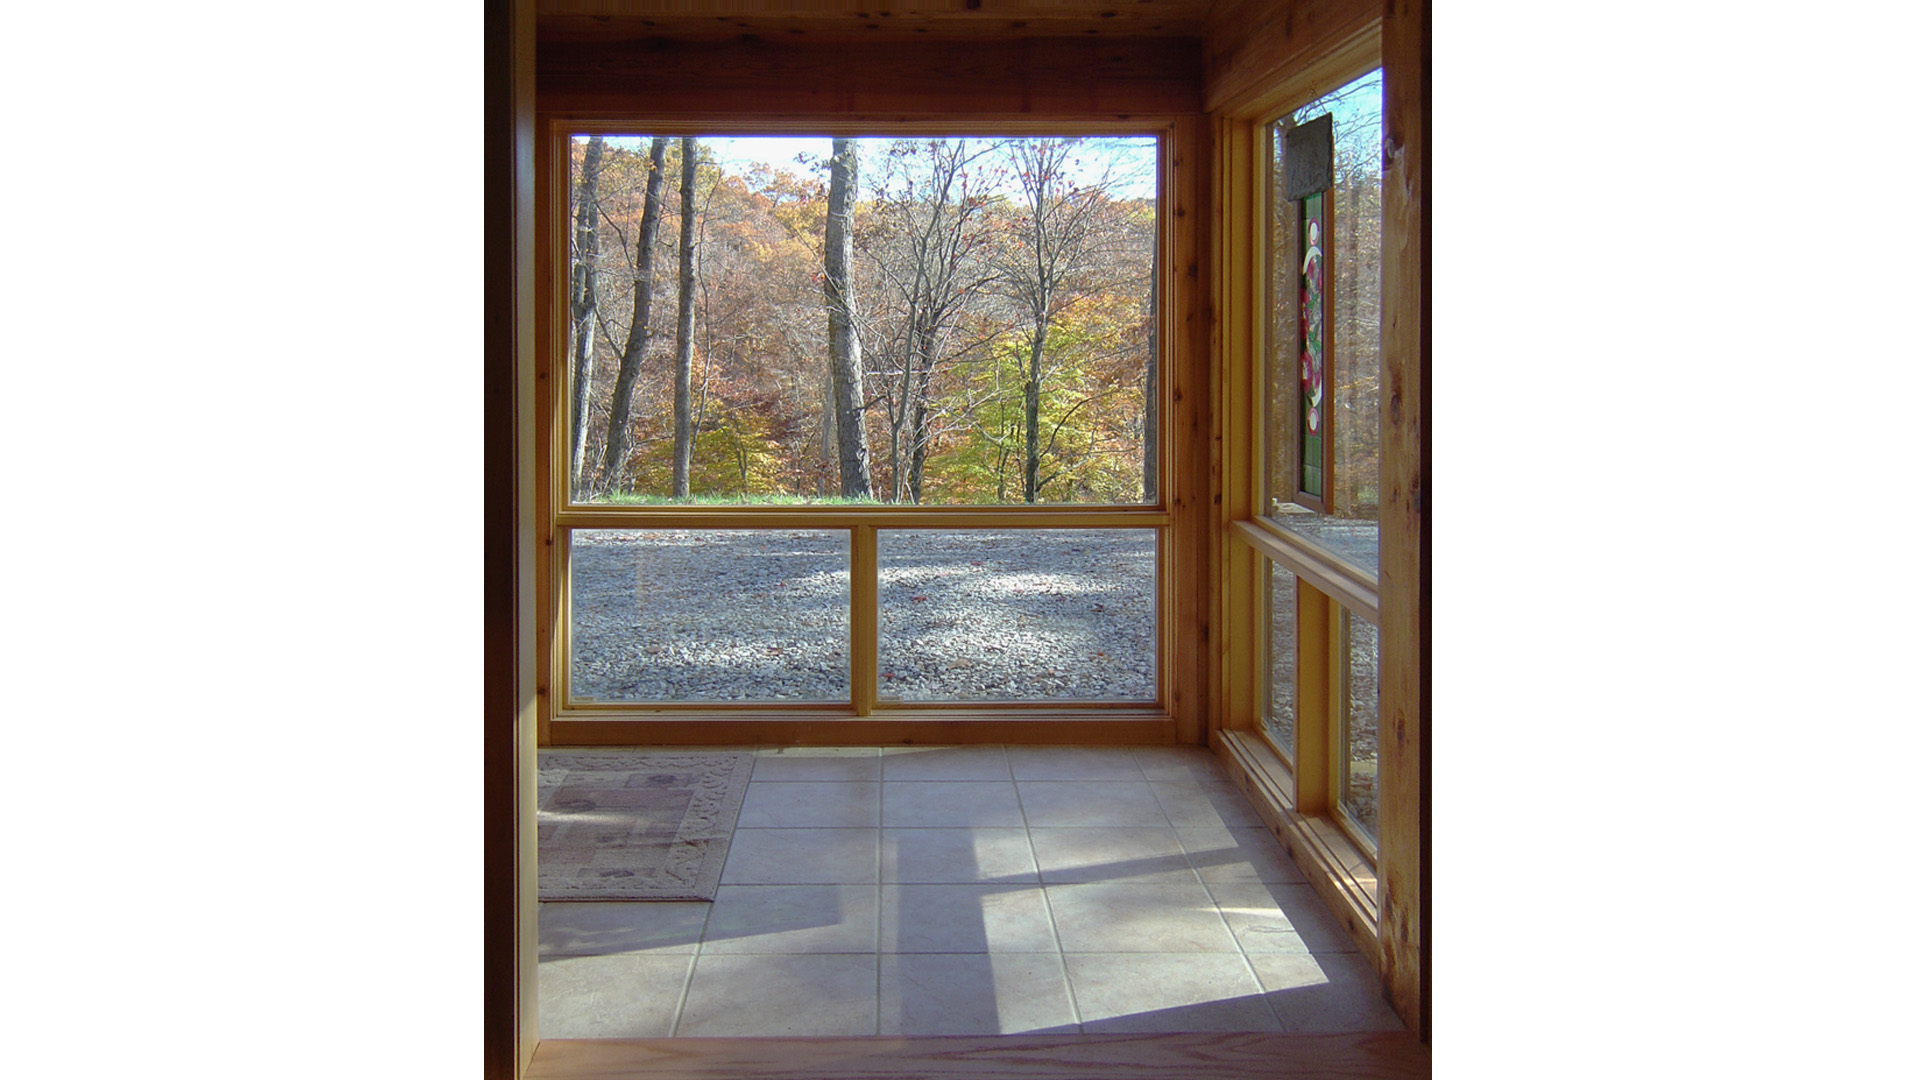 Nashville Cabin Retreat, Glass Entry Cube, HAUS Architecture, Christopher Short, Indianapolis Architect